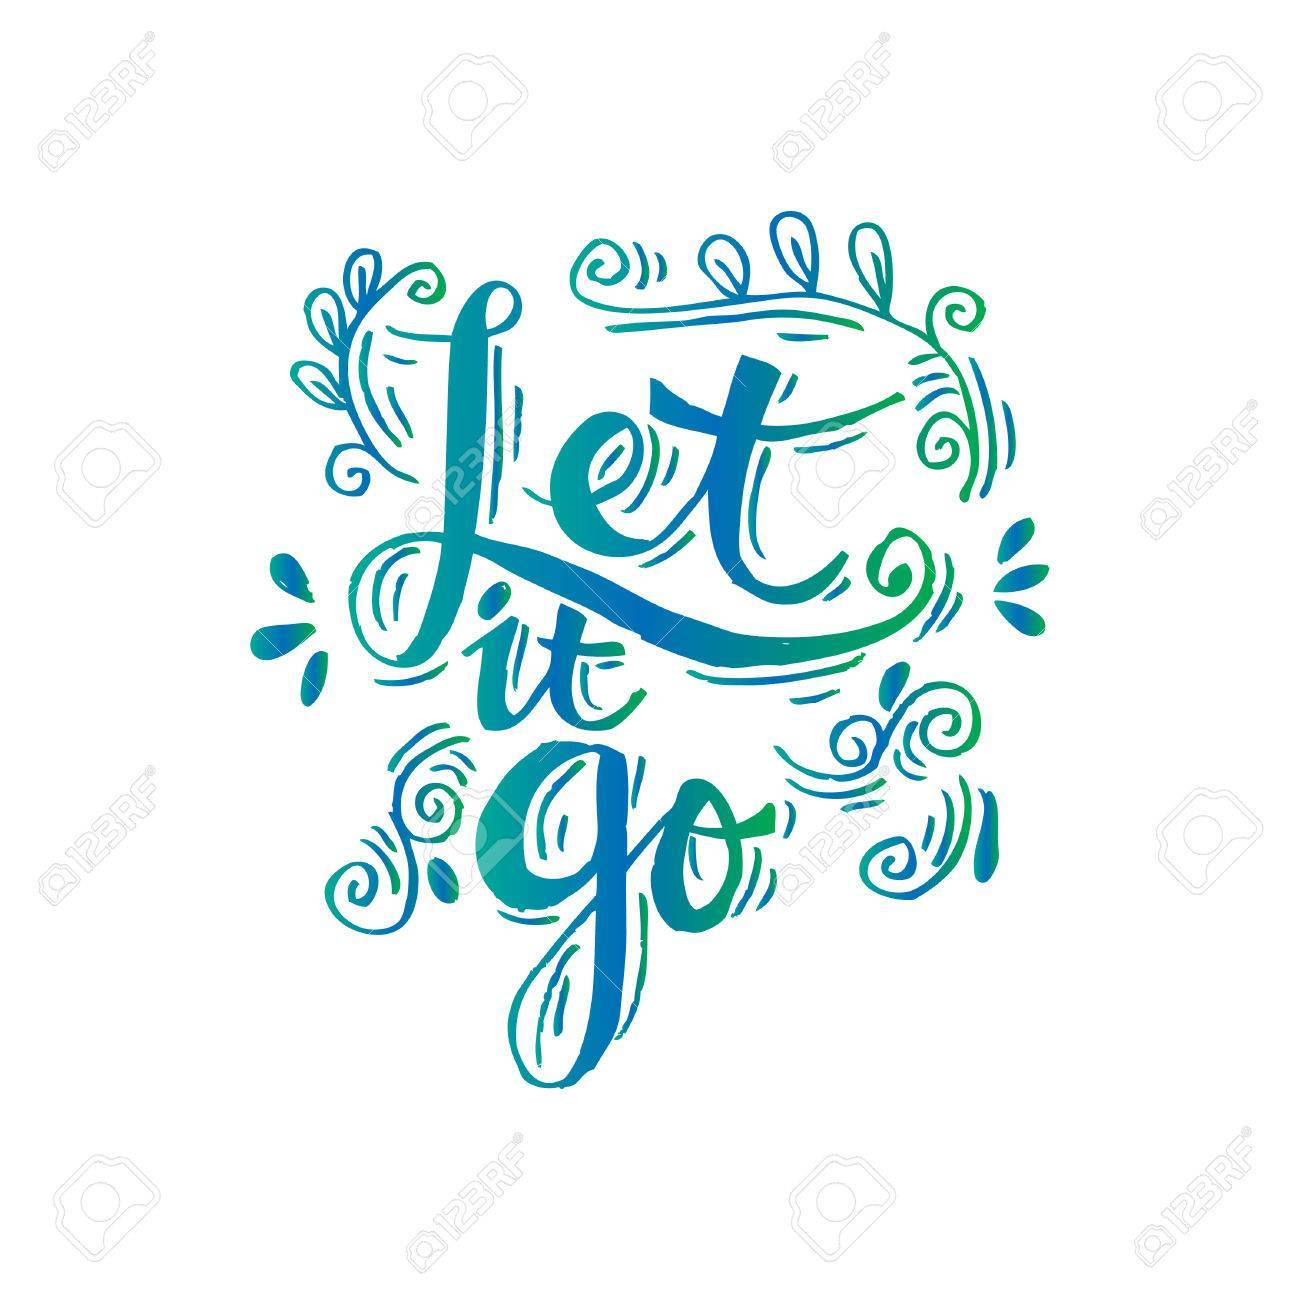 Let it go clipart 9 » Clipart Portal.